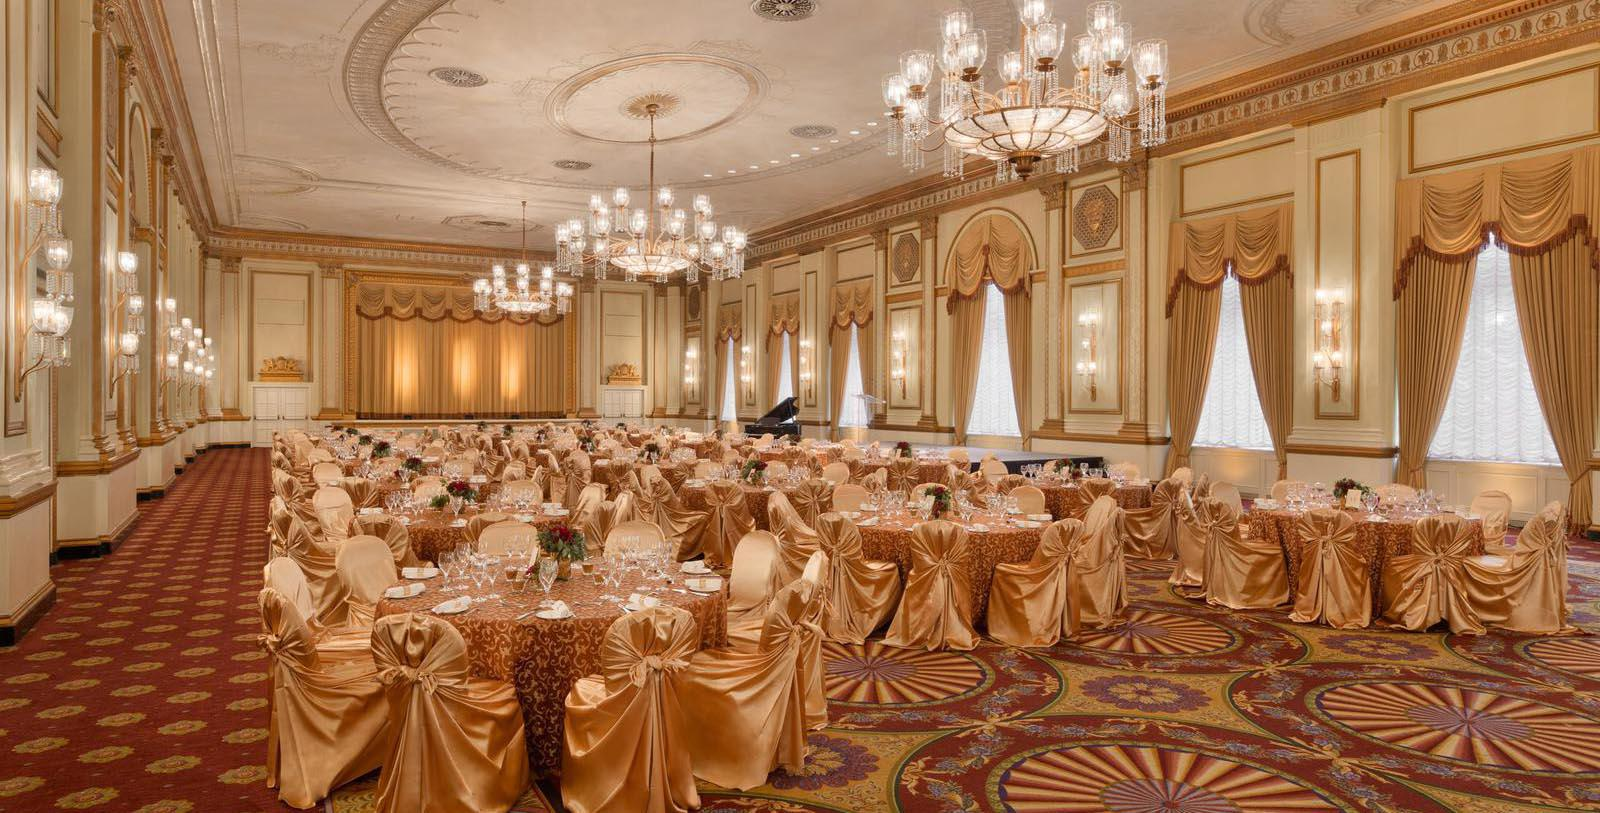 Image of ballroom set up for wedding Fairmont Hotel Vancouver, 1939, Member of Historic Hotels Worldwide, in Vancouver, Canada, Special Occasions